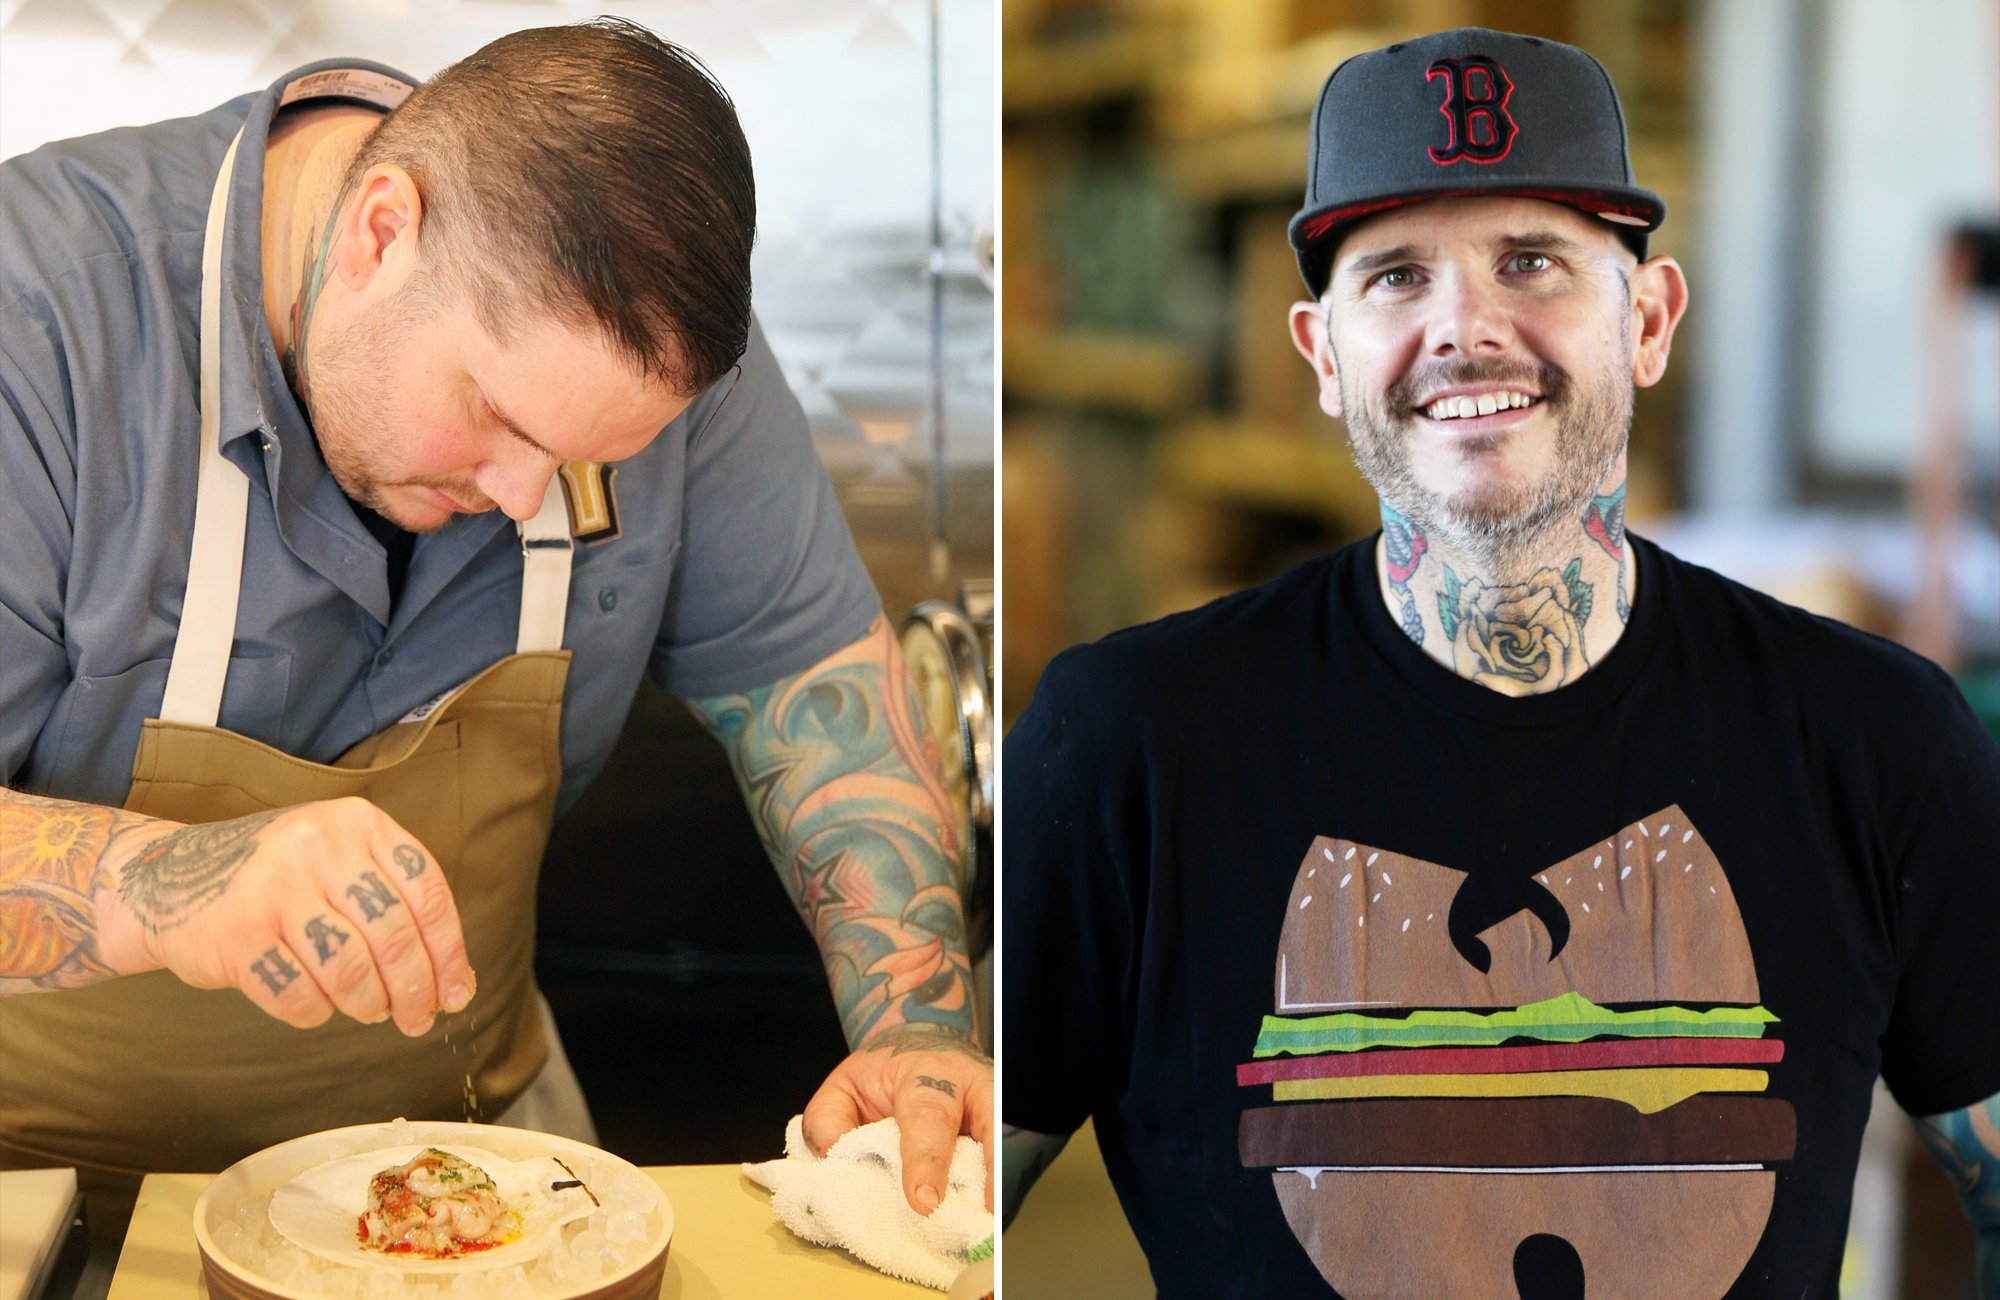 Chef Loses 200 Lbs. After Undergoing Surgery and Changing His Diet: 'I Had to Get Healthy'